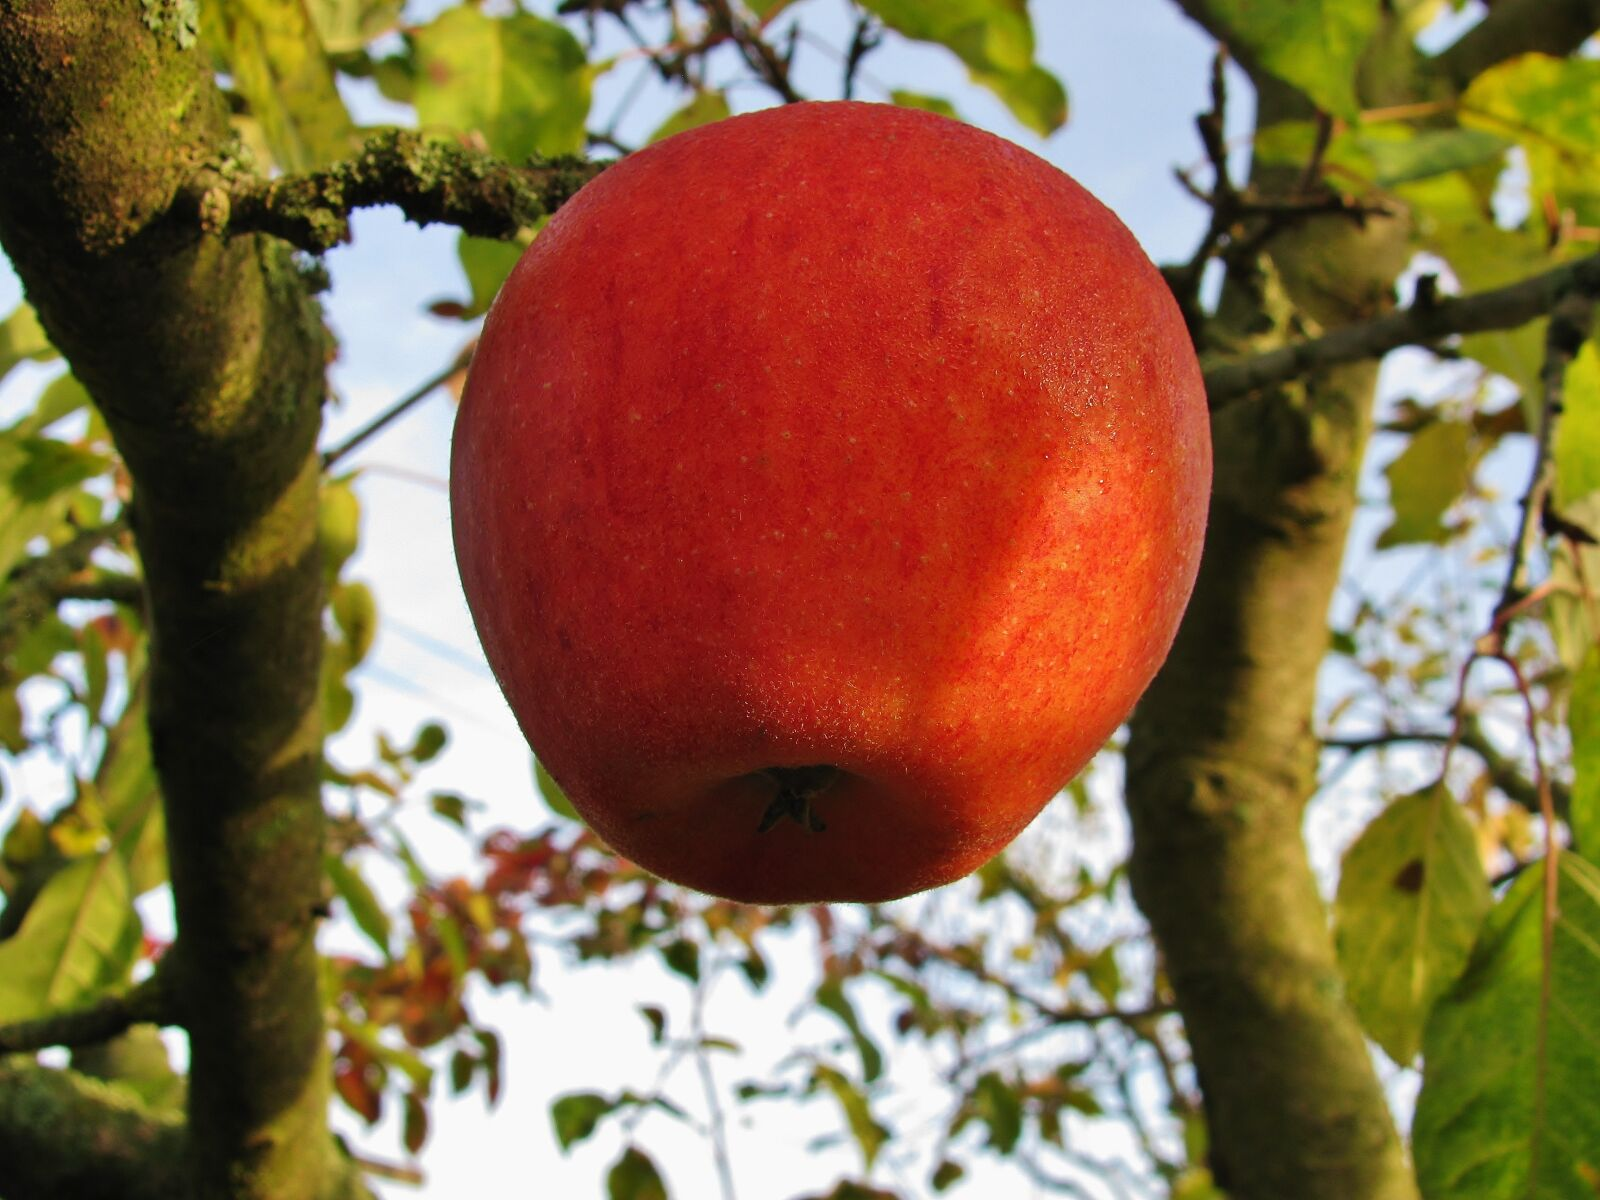 """Canon PowerShot SX110 IS sample photo. """"Apple, fruit, red"""" photography"""